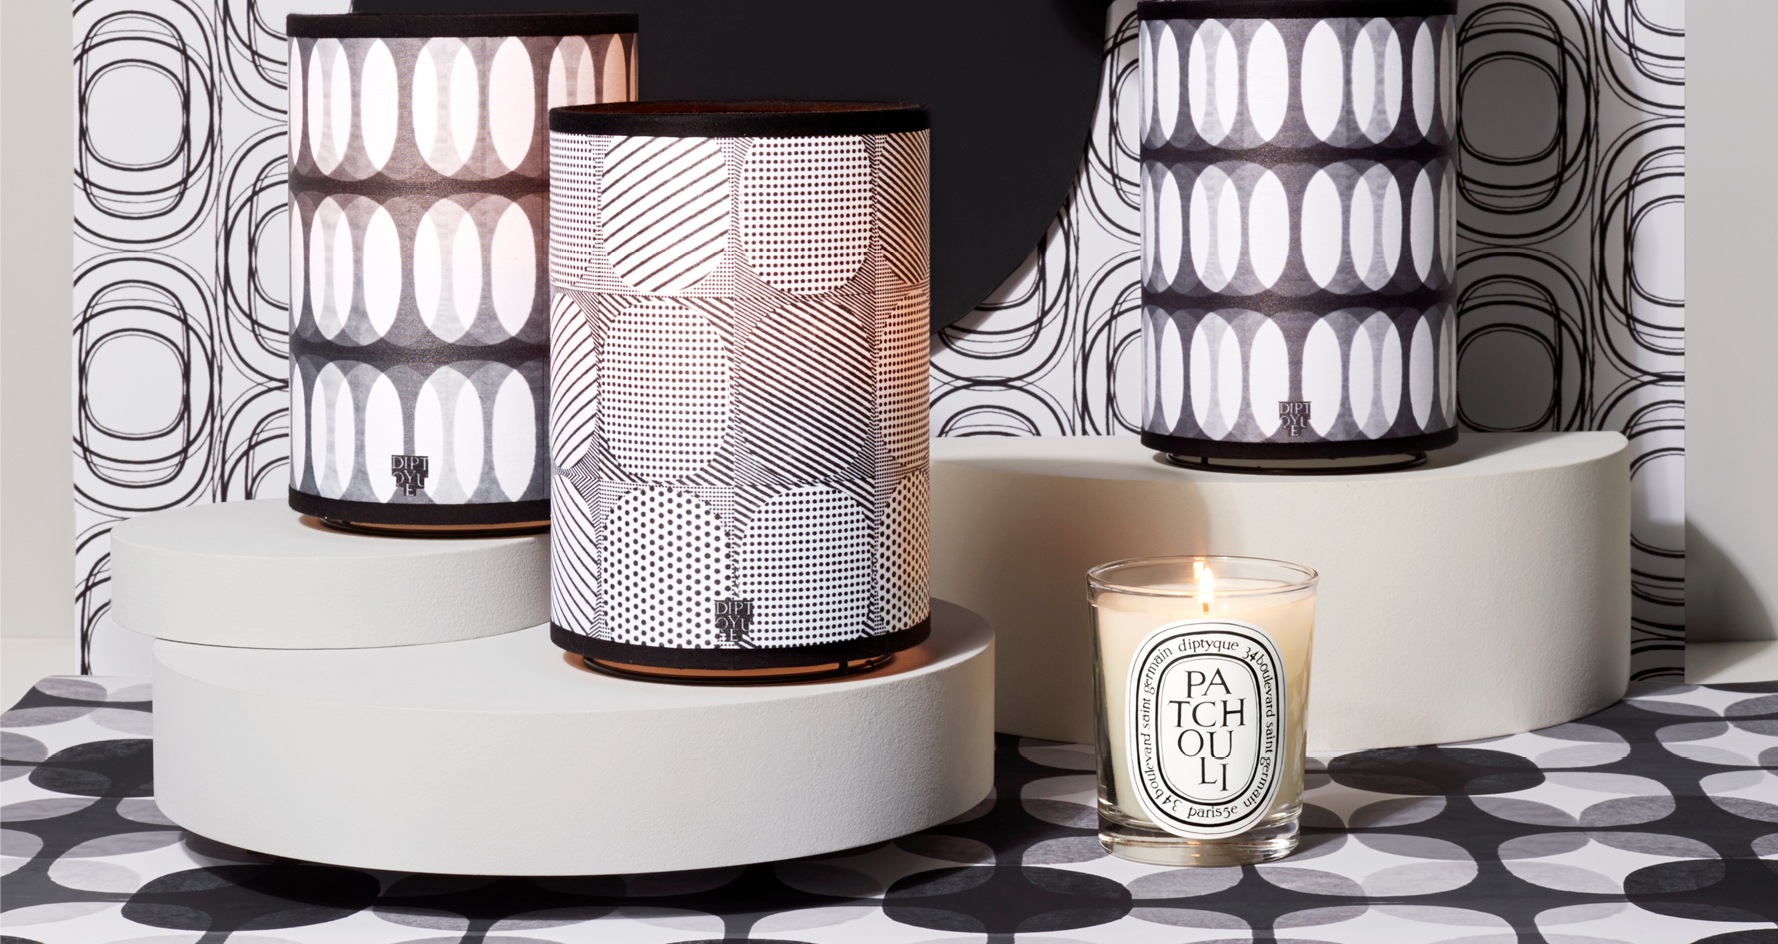 Visual of the diptyque candle shades on a graphic background